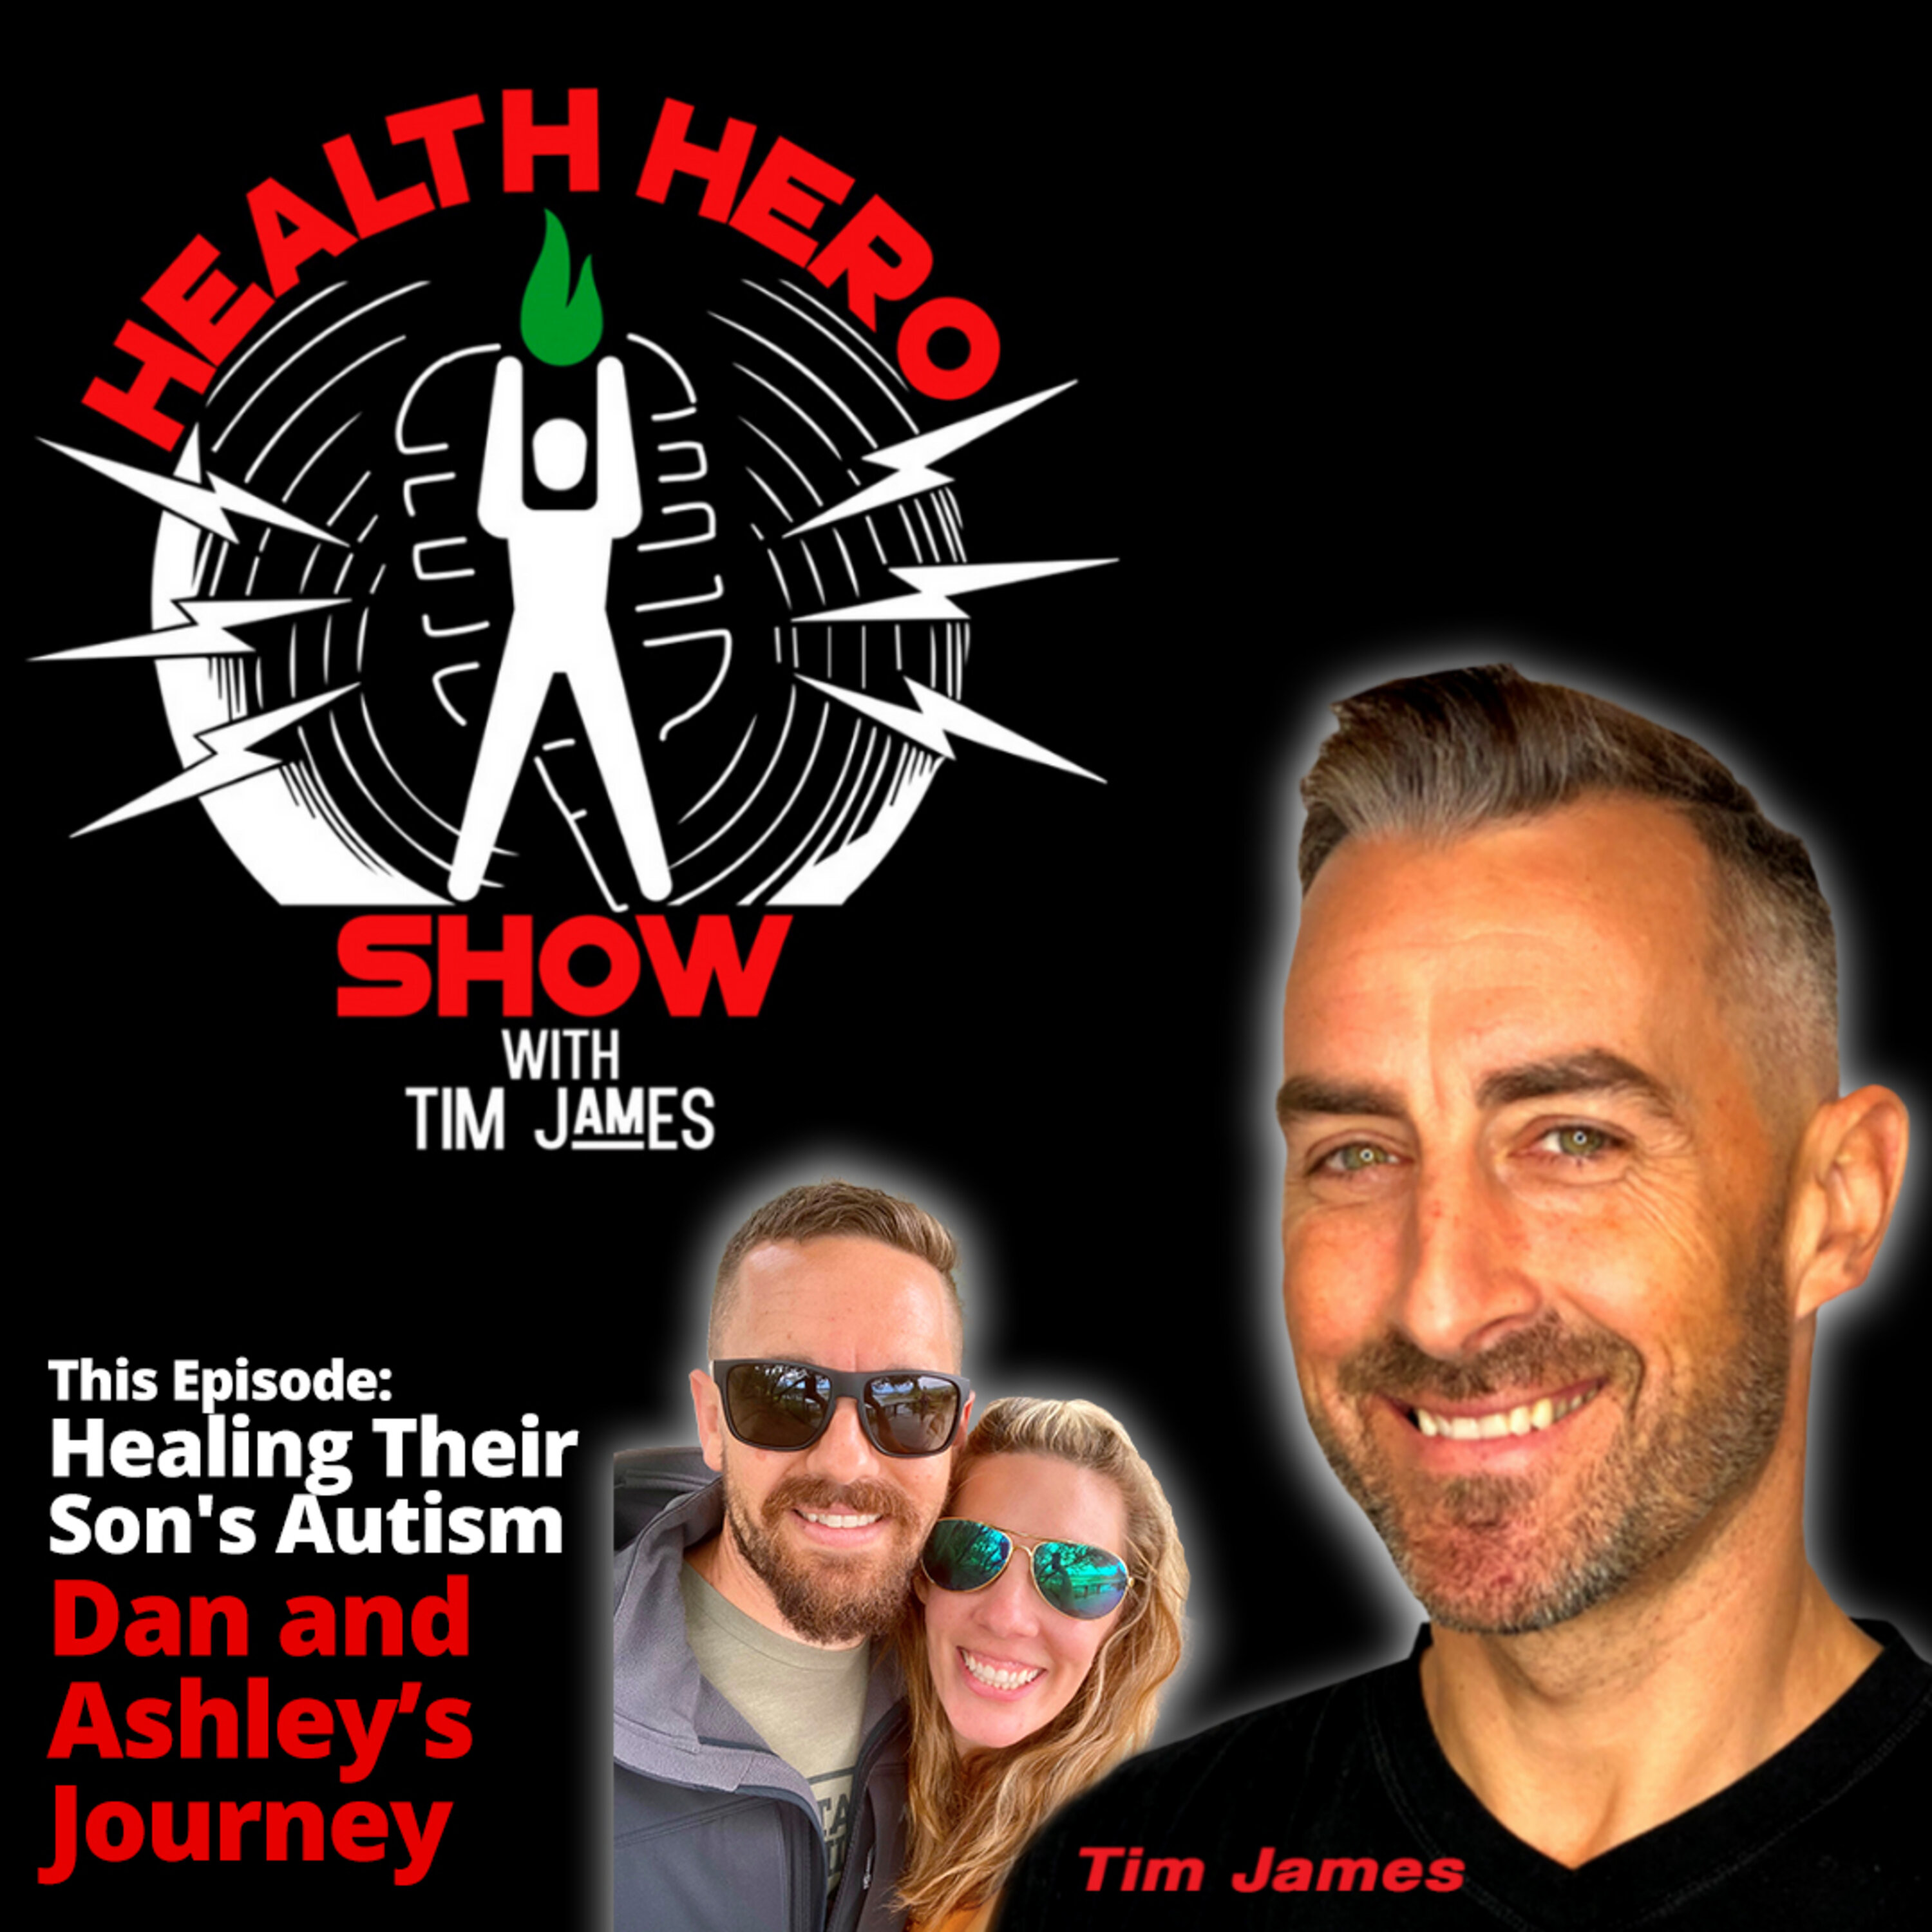 Ep 87: Dan and Ashley's Journey, Healing Their Son's Autism